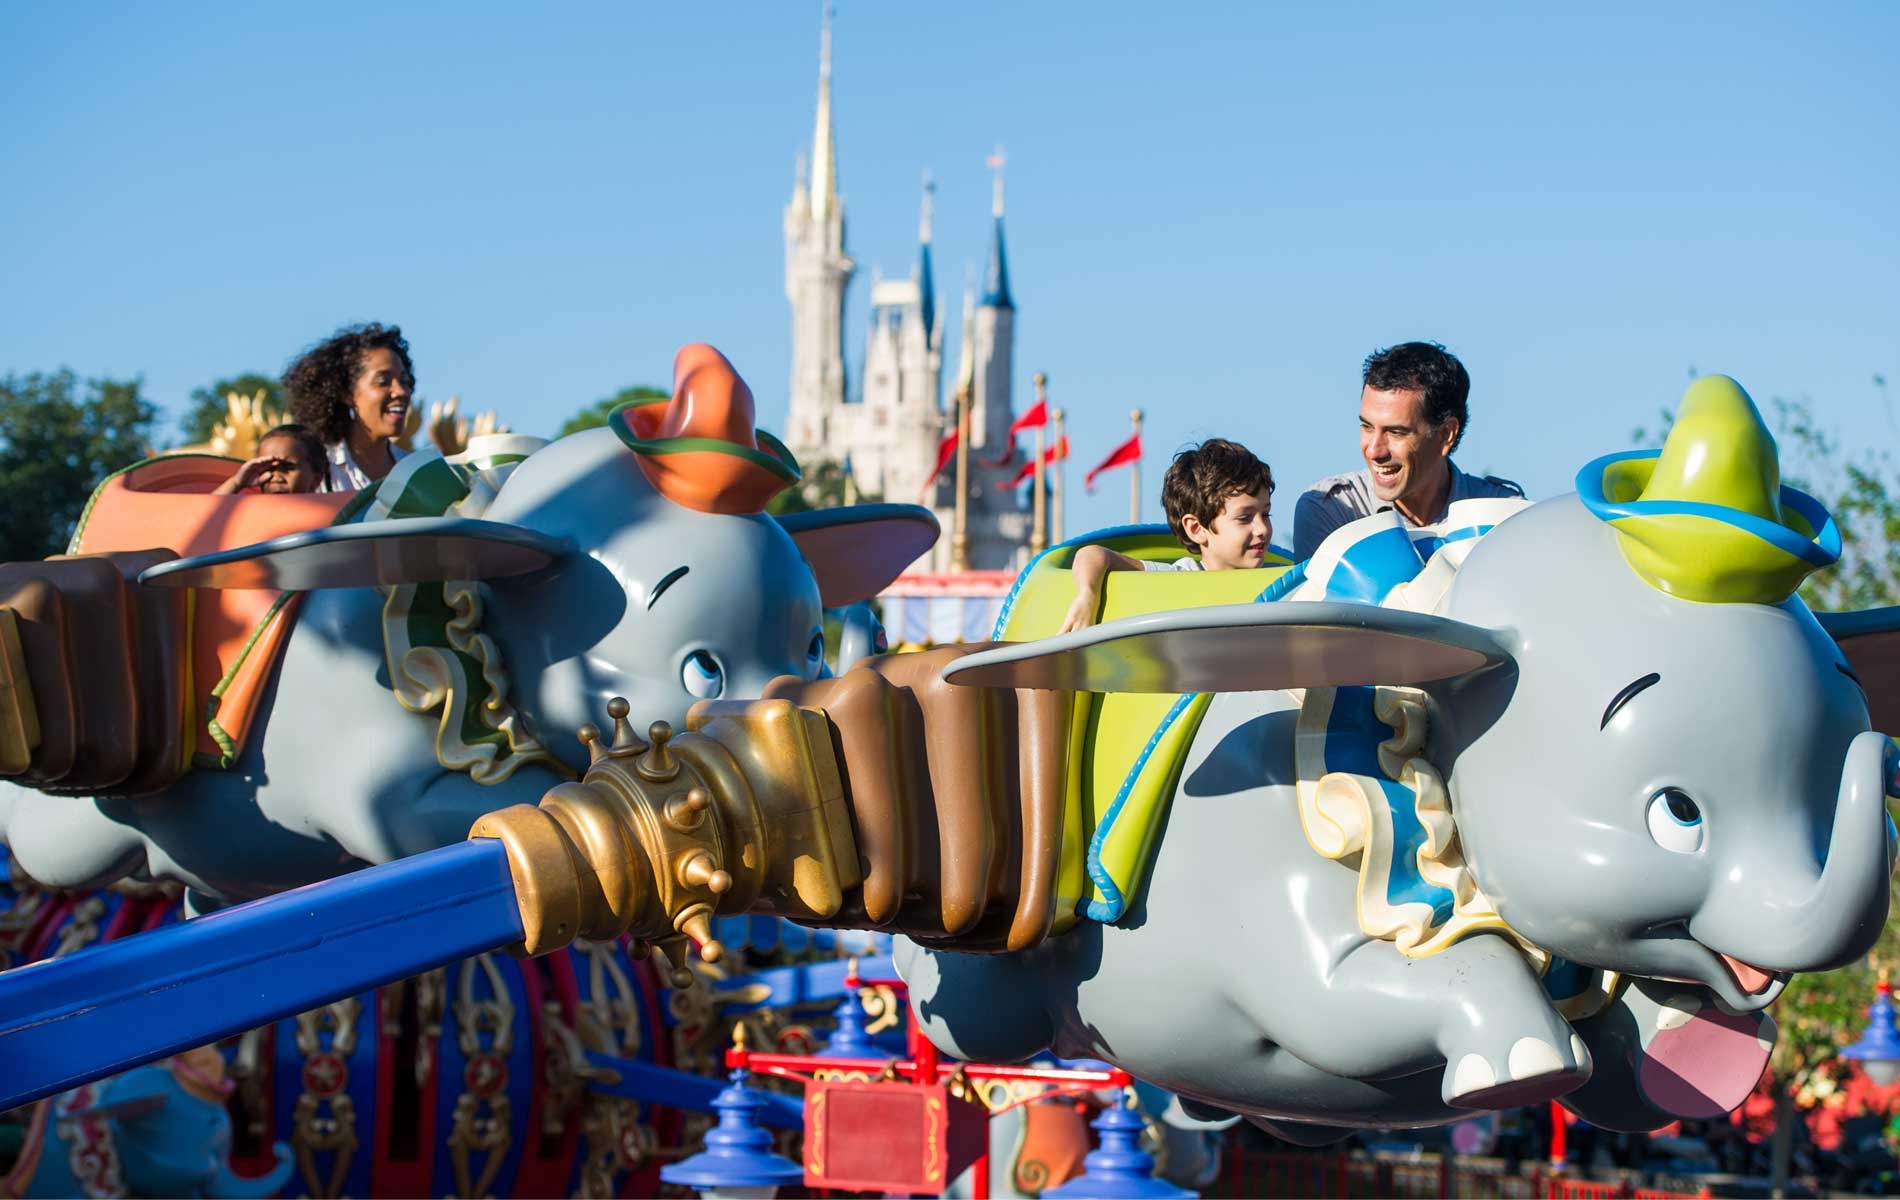 Walt Disney World 2020 Vacation Packages are Coming Soon